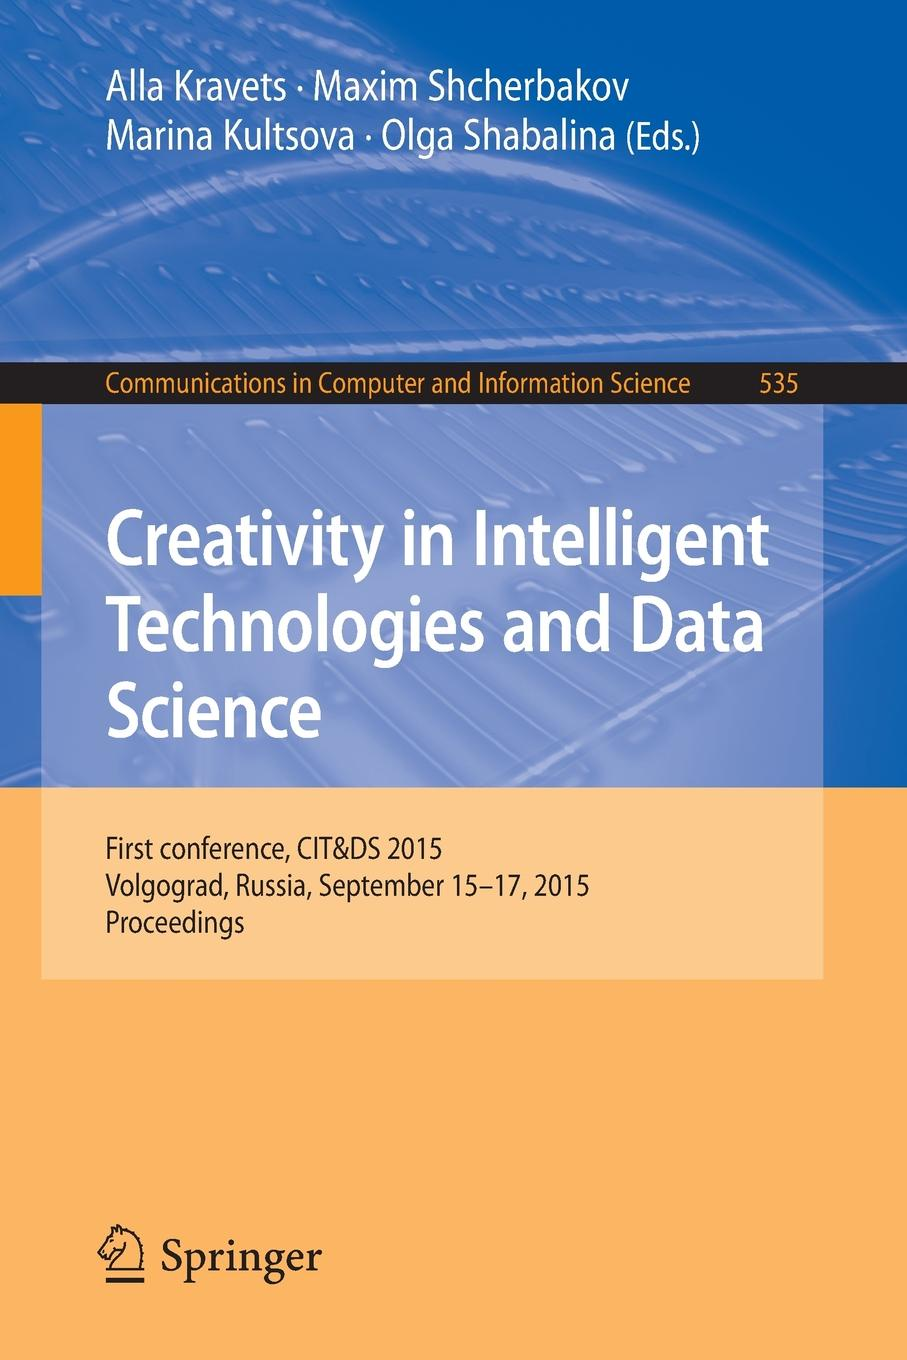 цена на Creativity in Intelligent Technologies and Data Science. First Conference, CIT&DS 2015, Volgograd, Russia, September 15-17, 2015. Proceedings